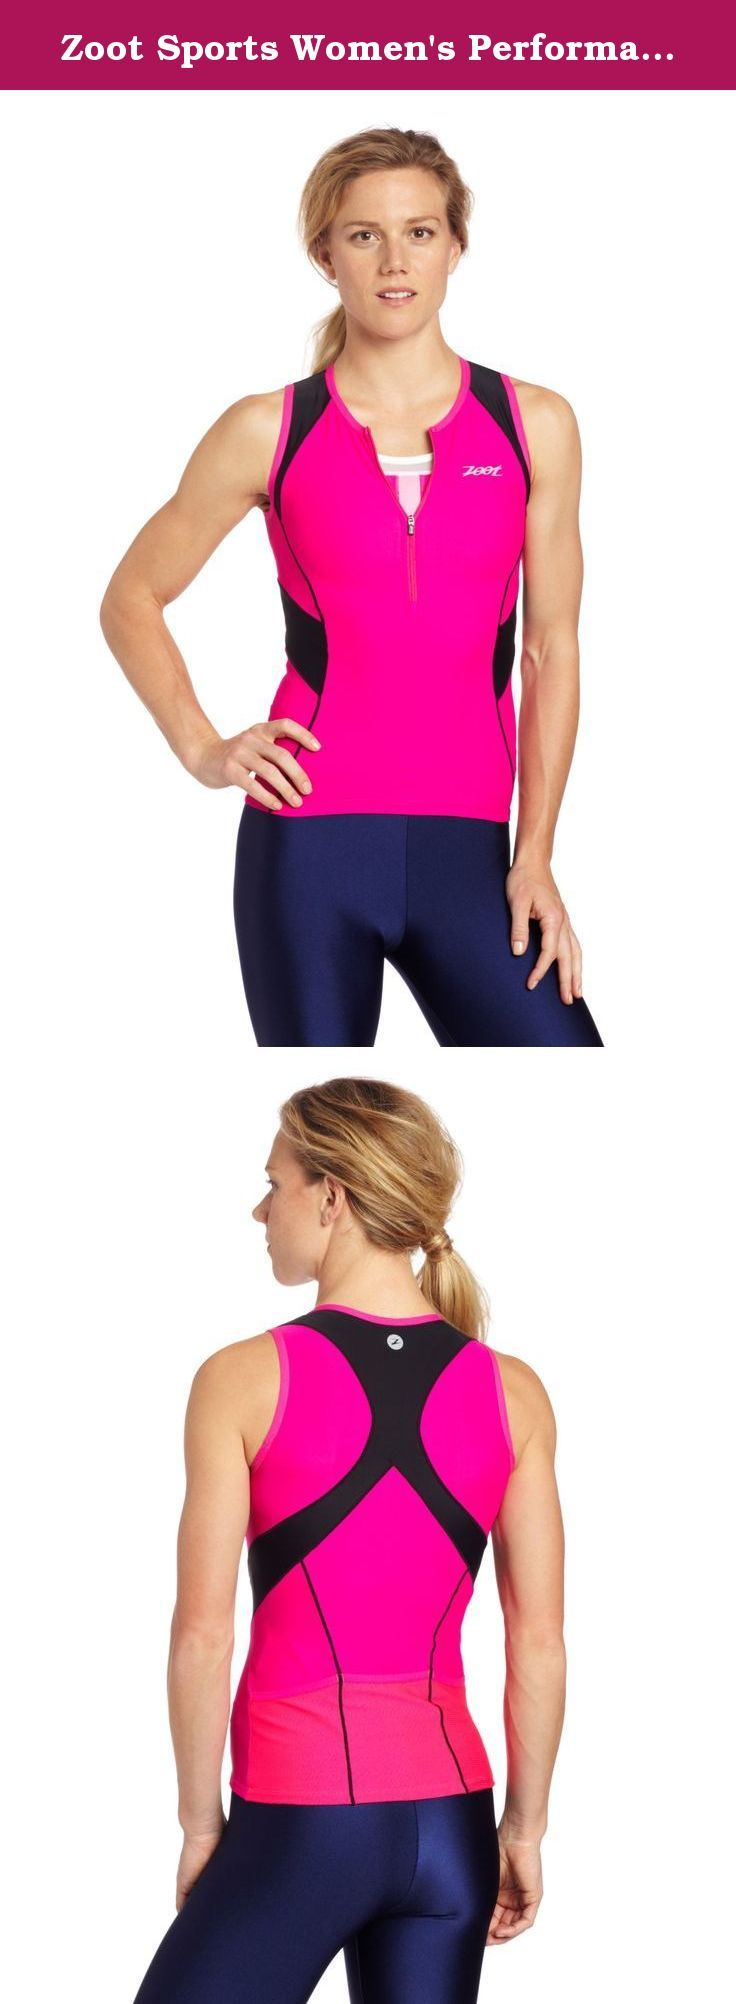 Zoot Sports Women's Performance Tri Tank Top. By design races are long and hard. And, by design, Zoot's triathlon apparel keeps you supported through all of it.